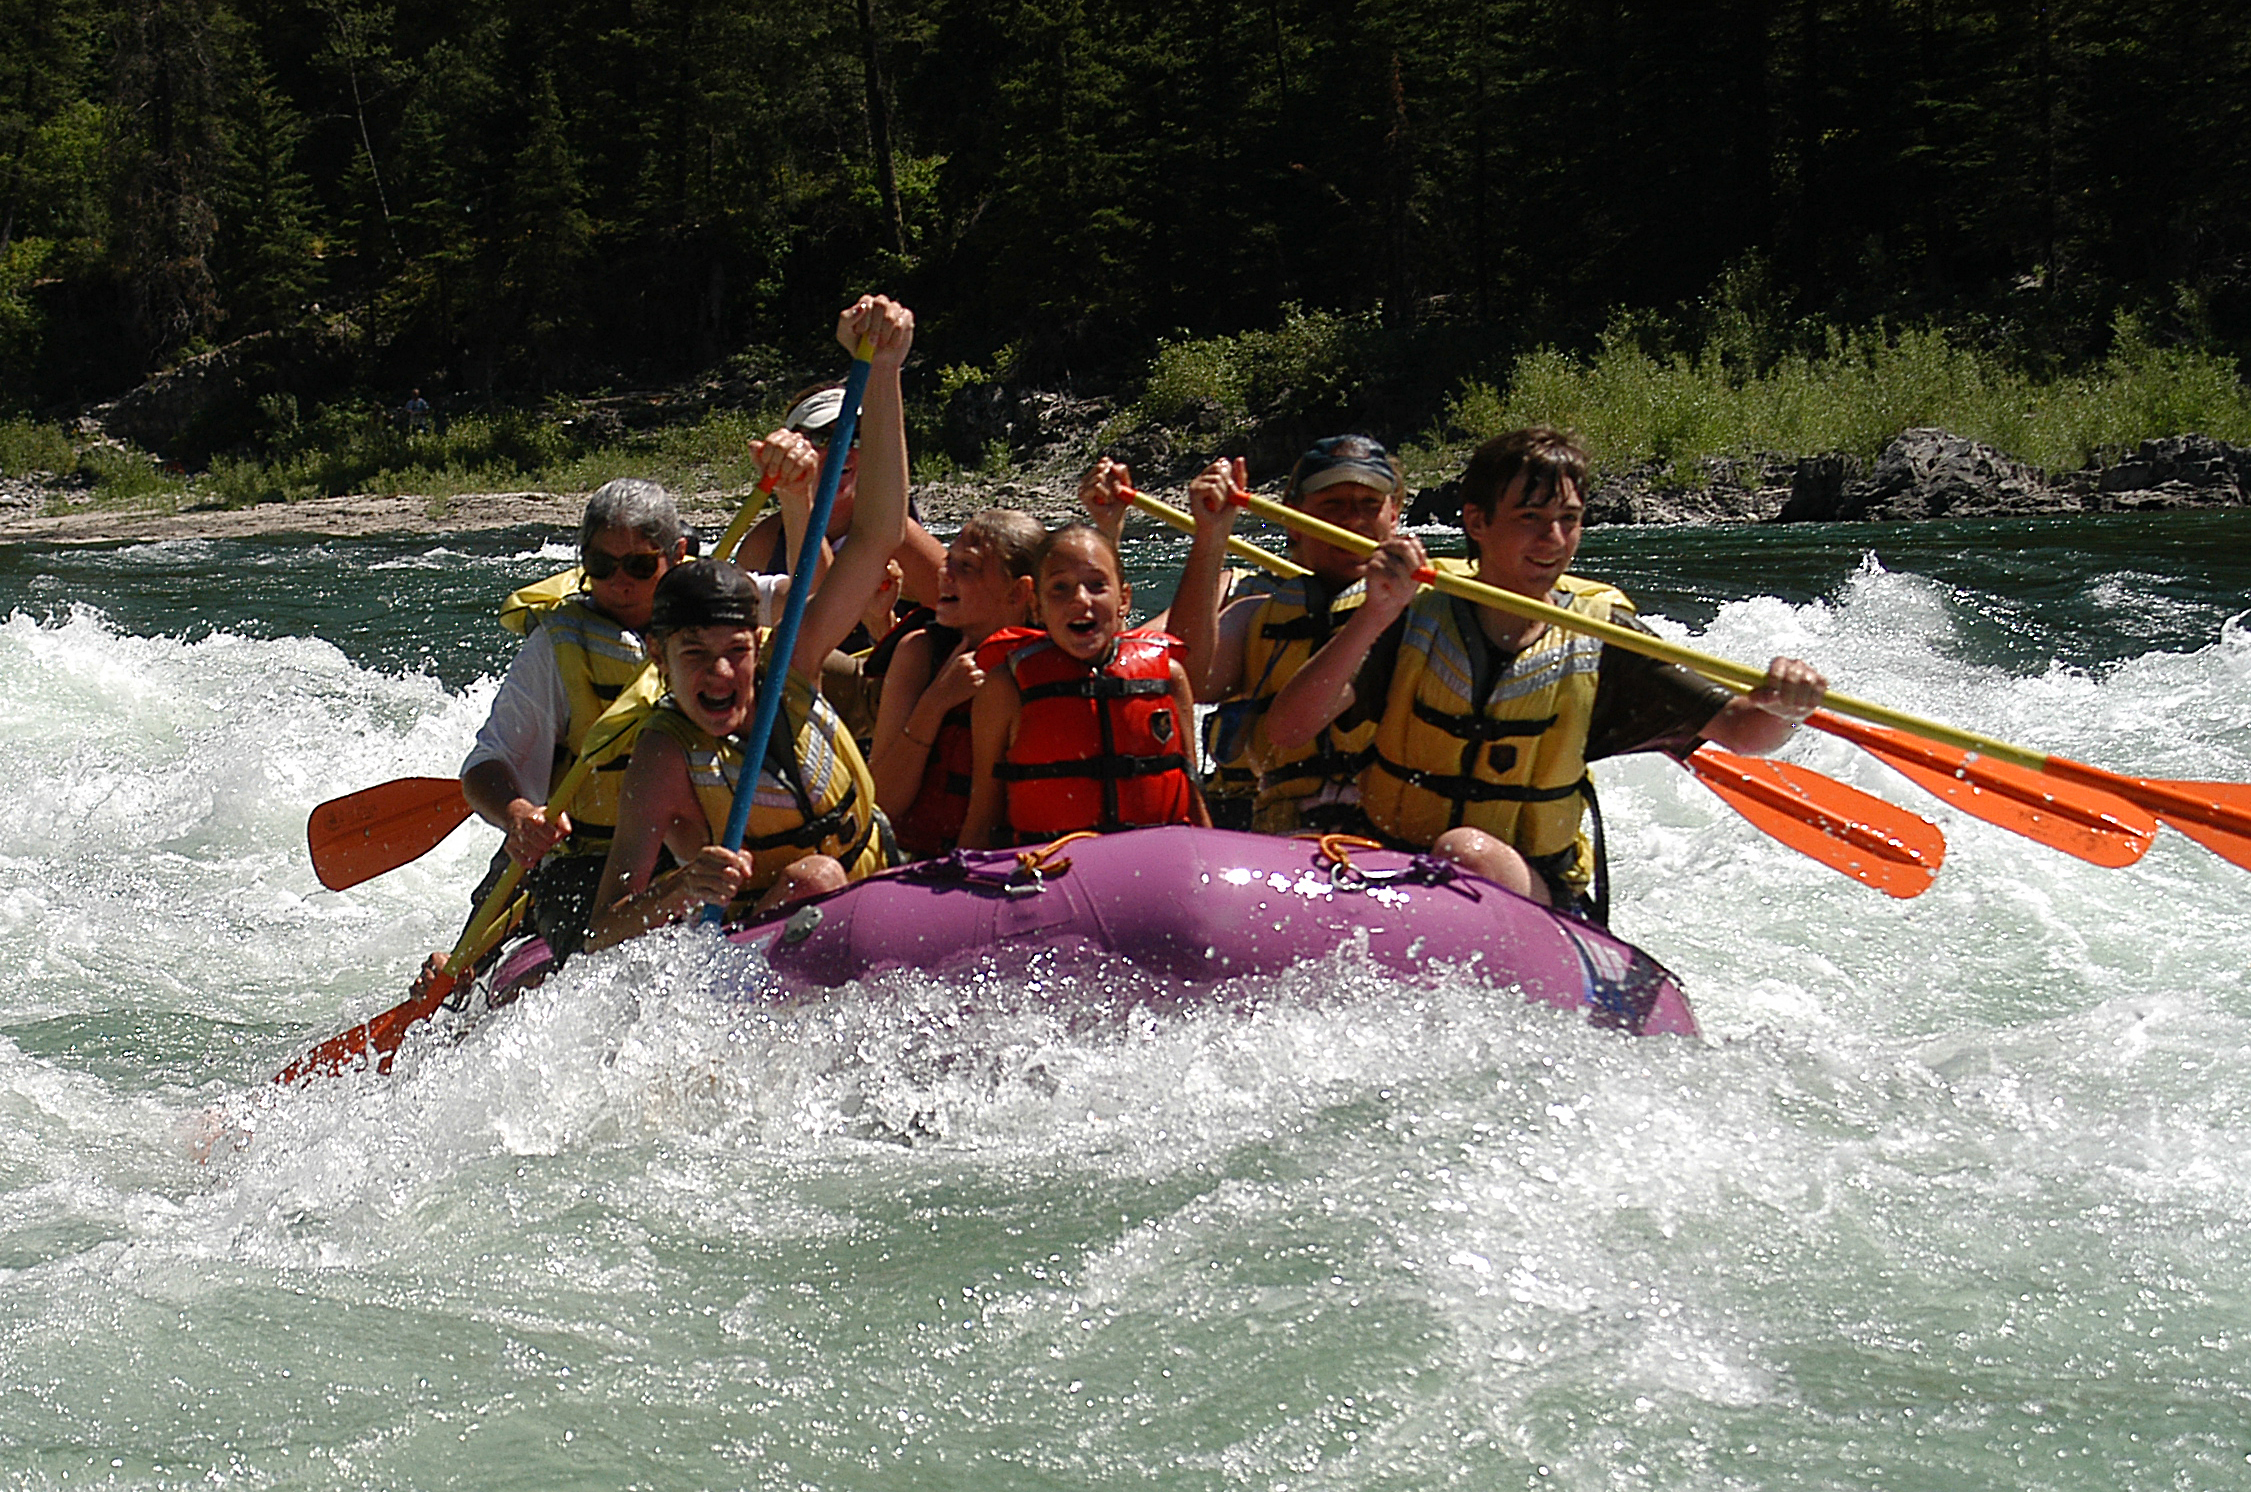 "<a href=""/jackson-hole-rafting-reservations/"">Reservations</a>"